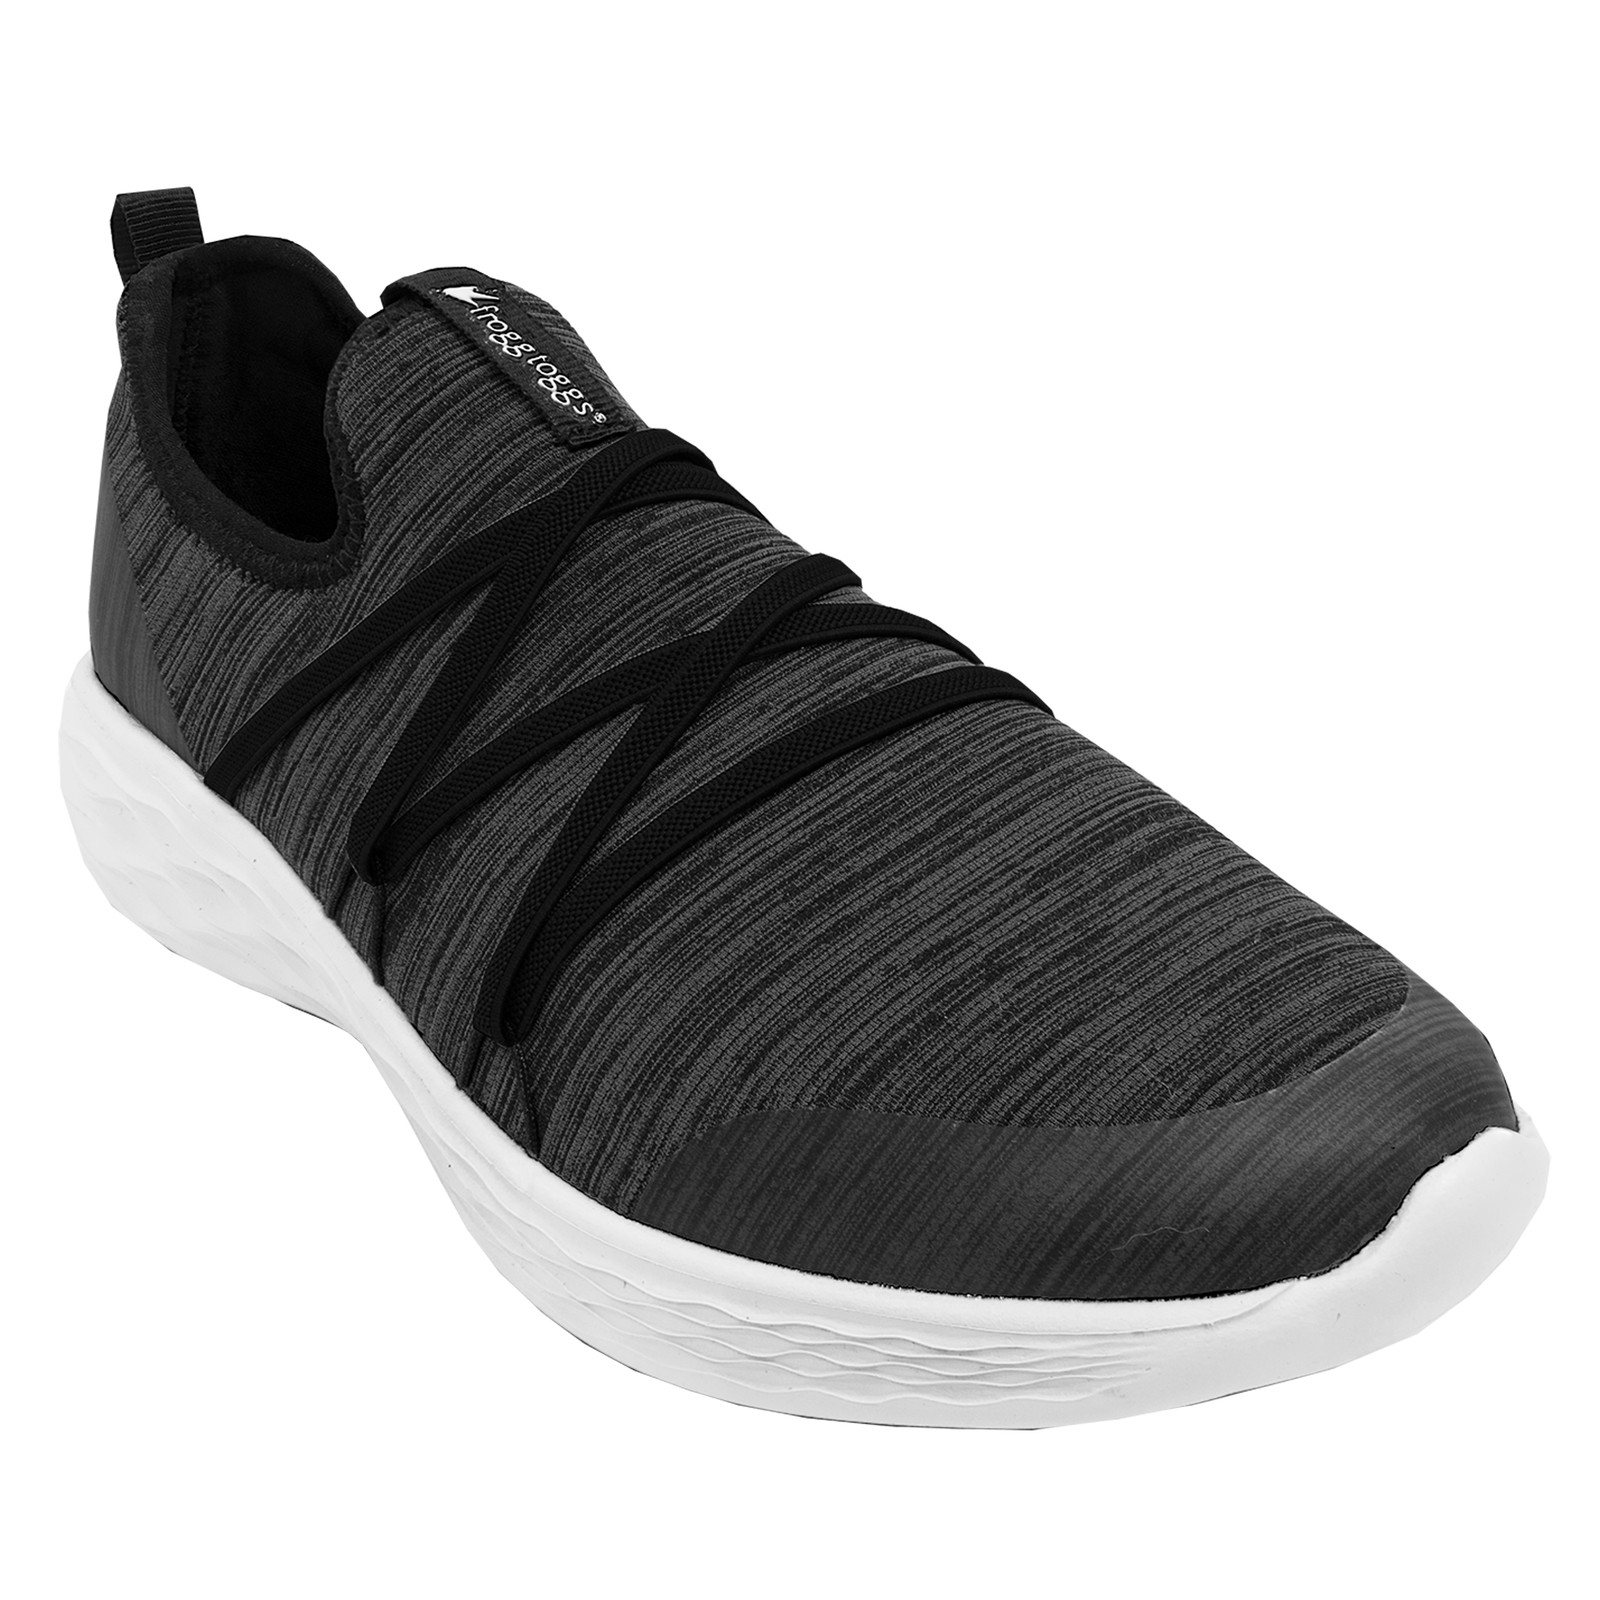 Women's High and Dry Elite Shoe Black-large